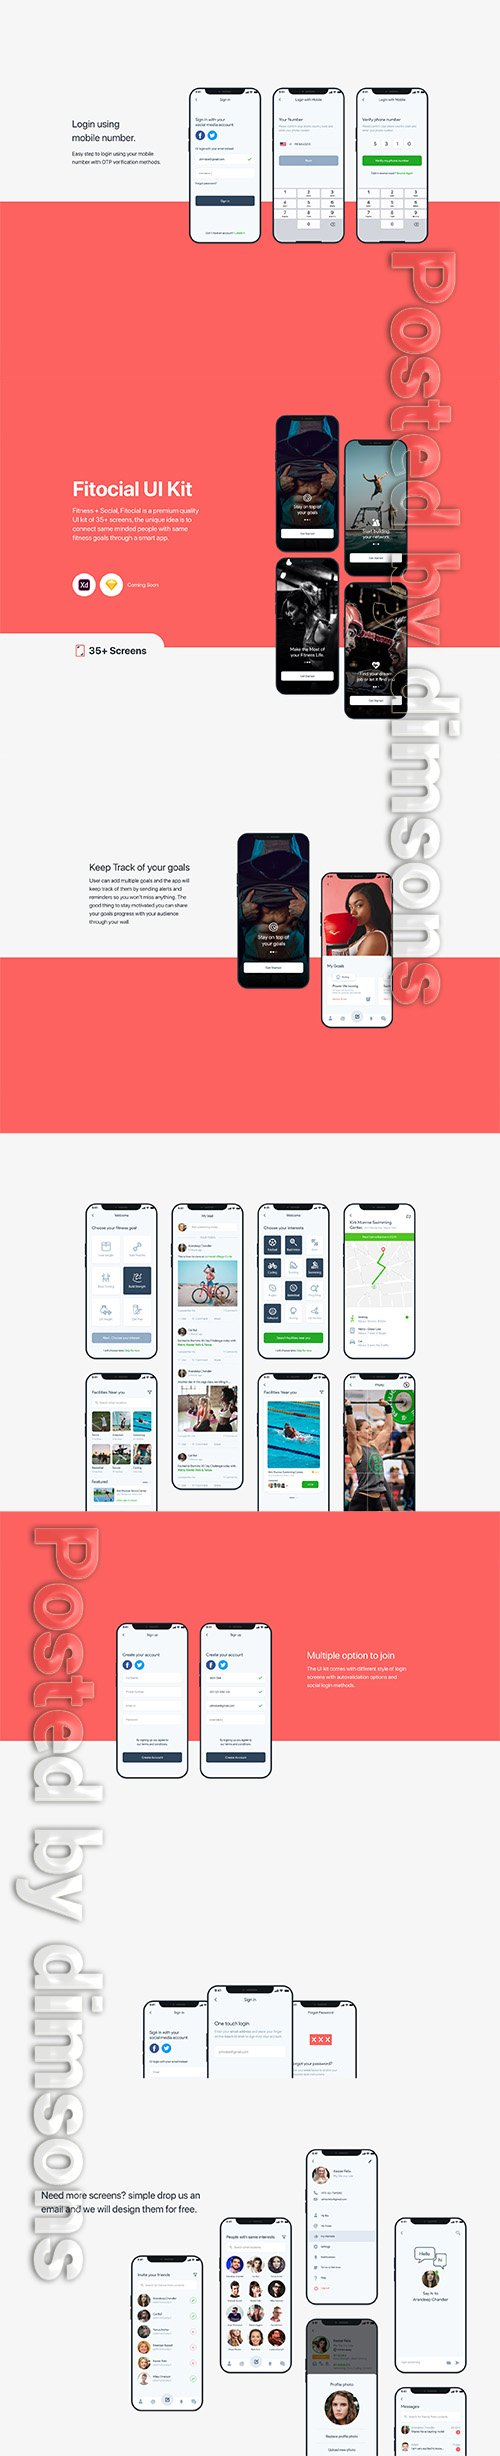 Fitocial UI kit for XD